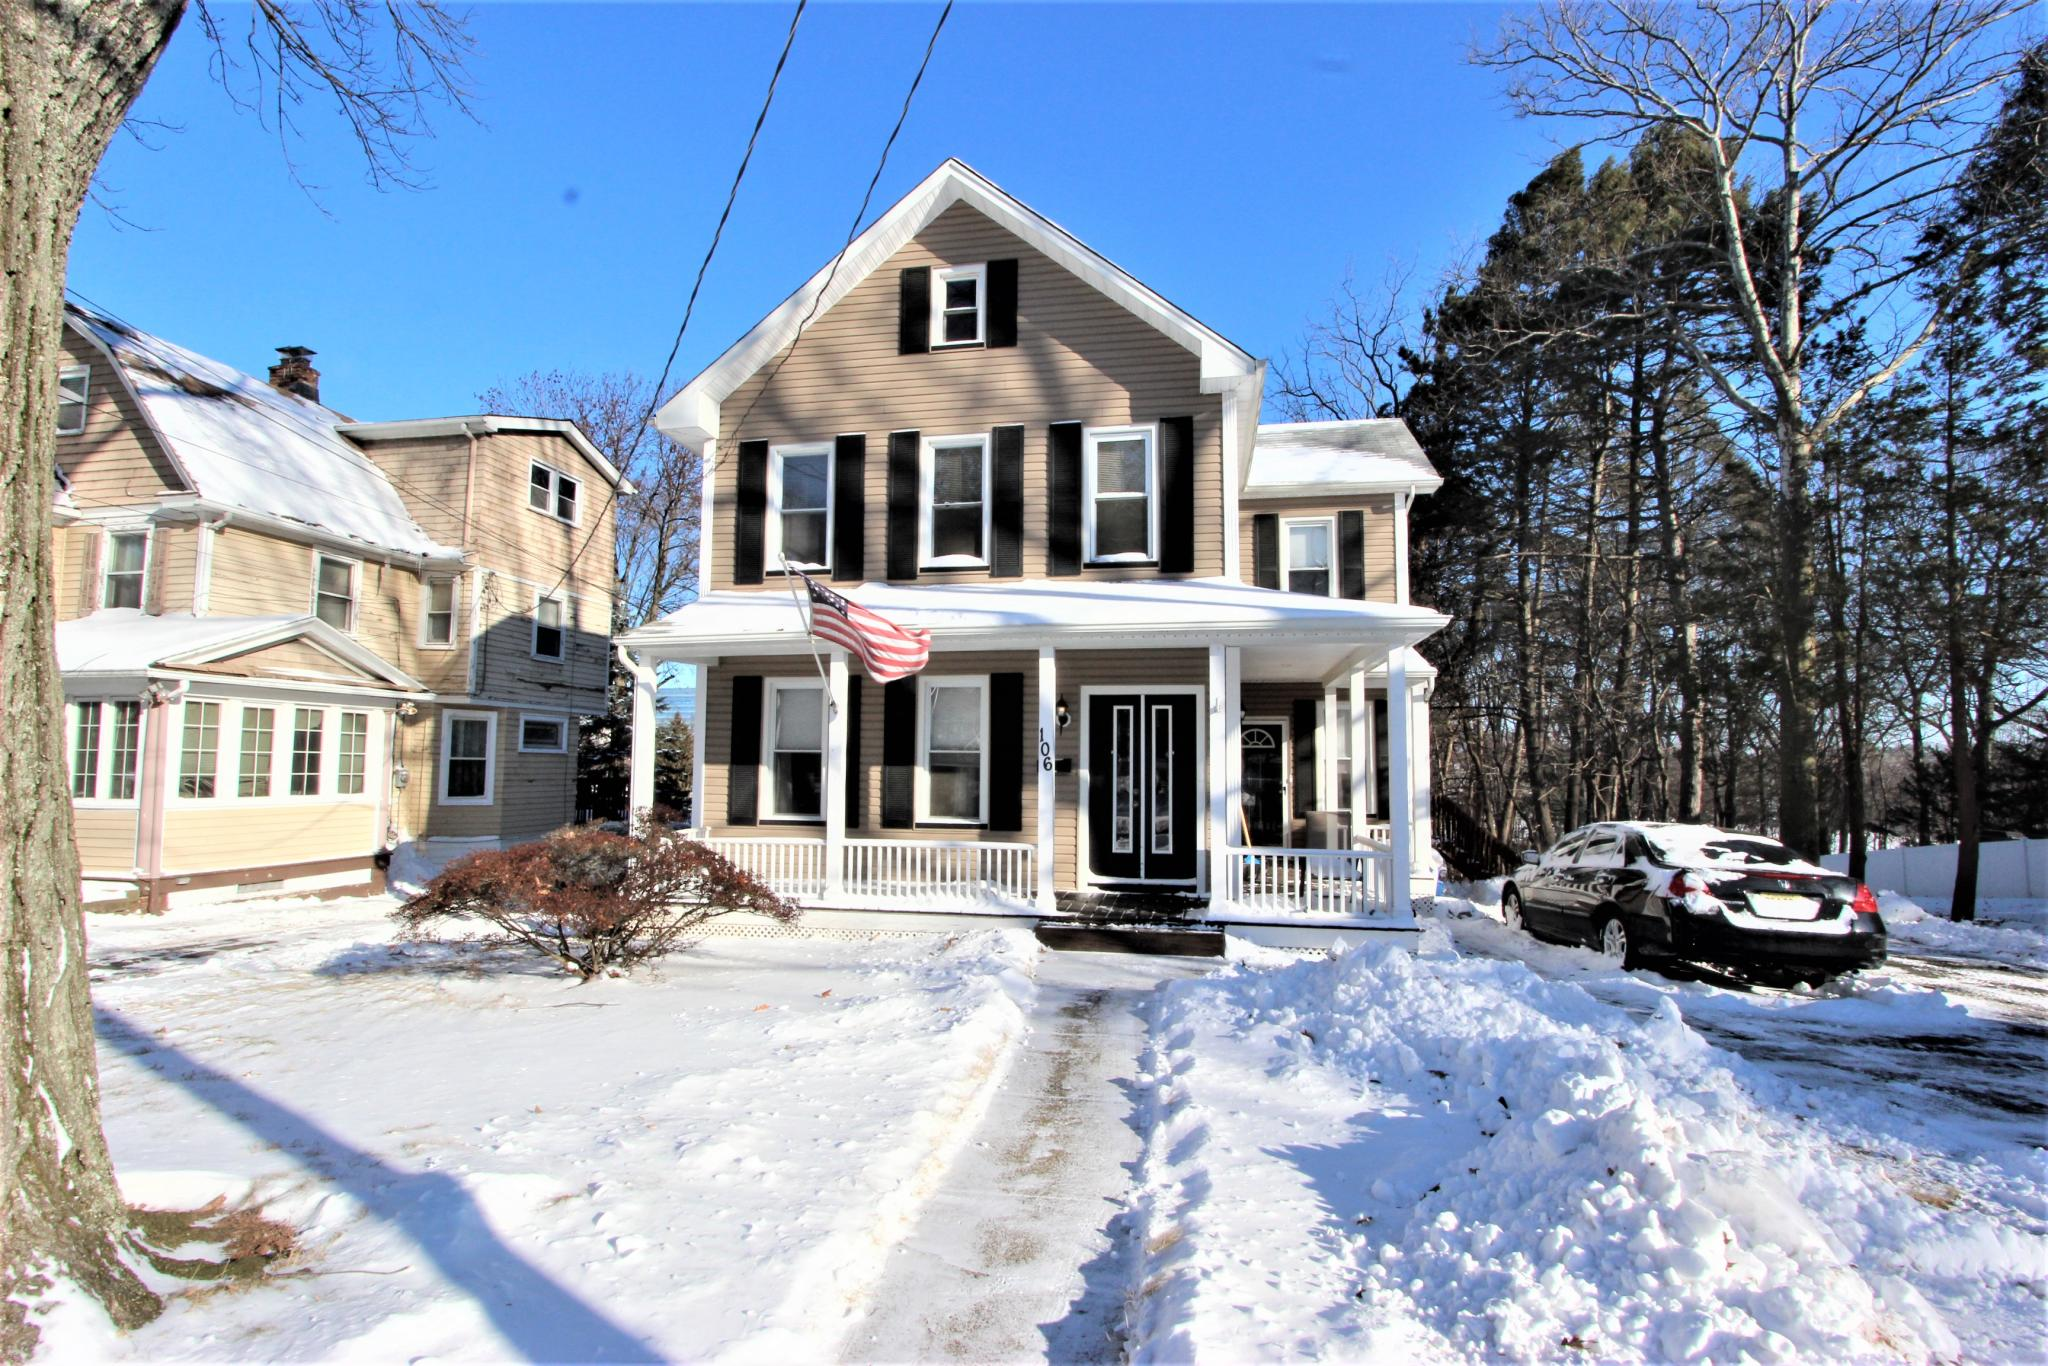 106 high st for rent nutley nj trulia